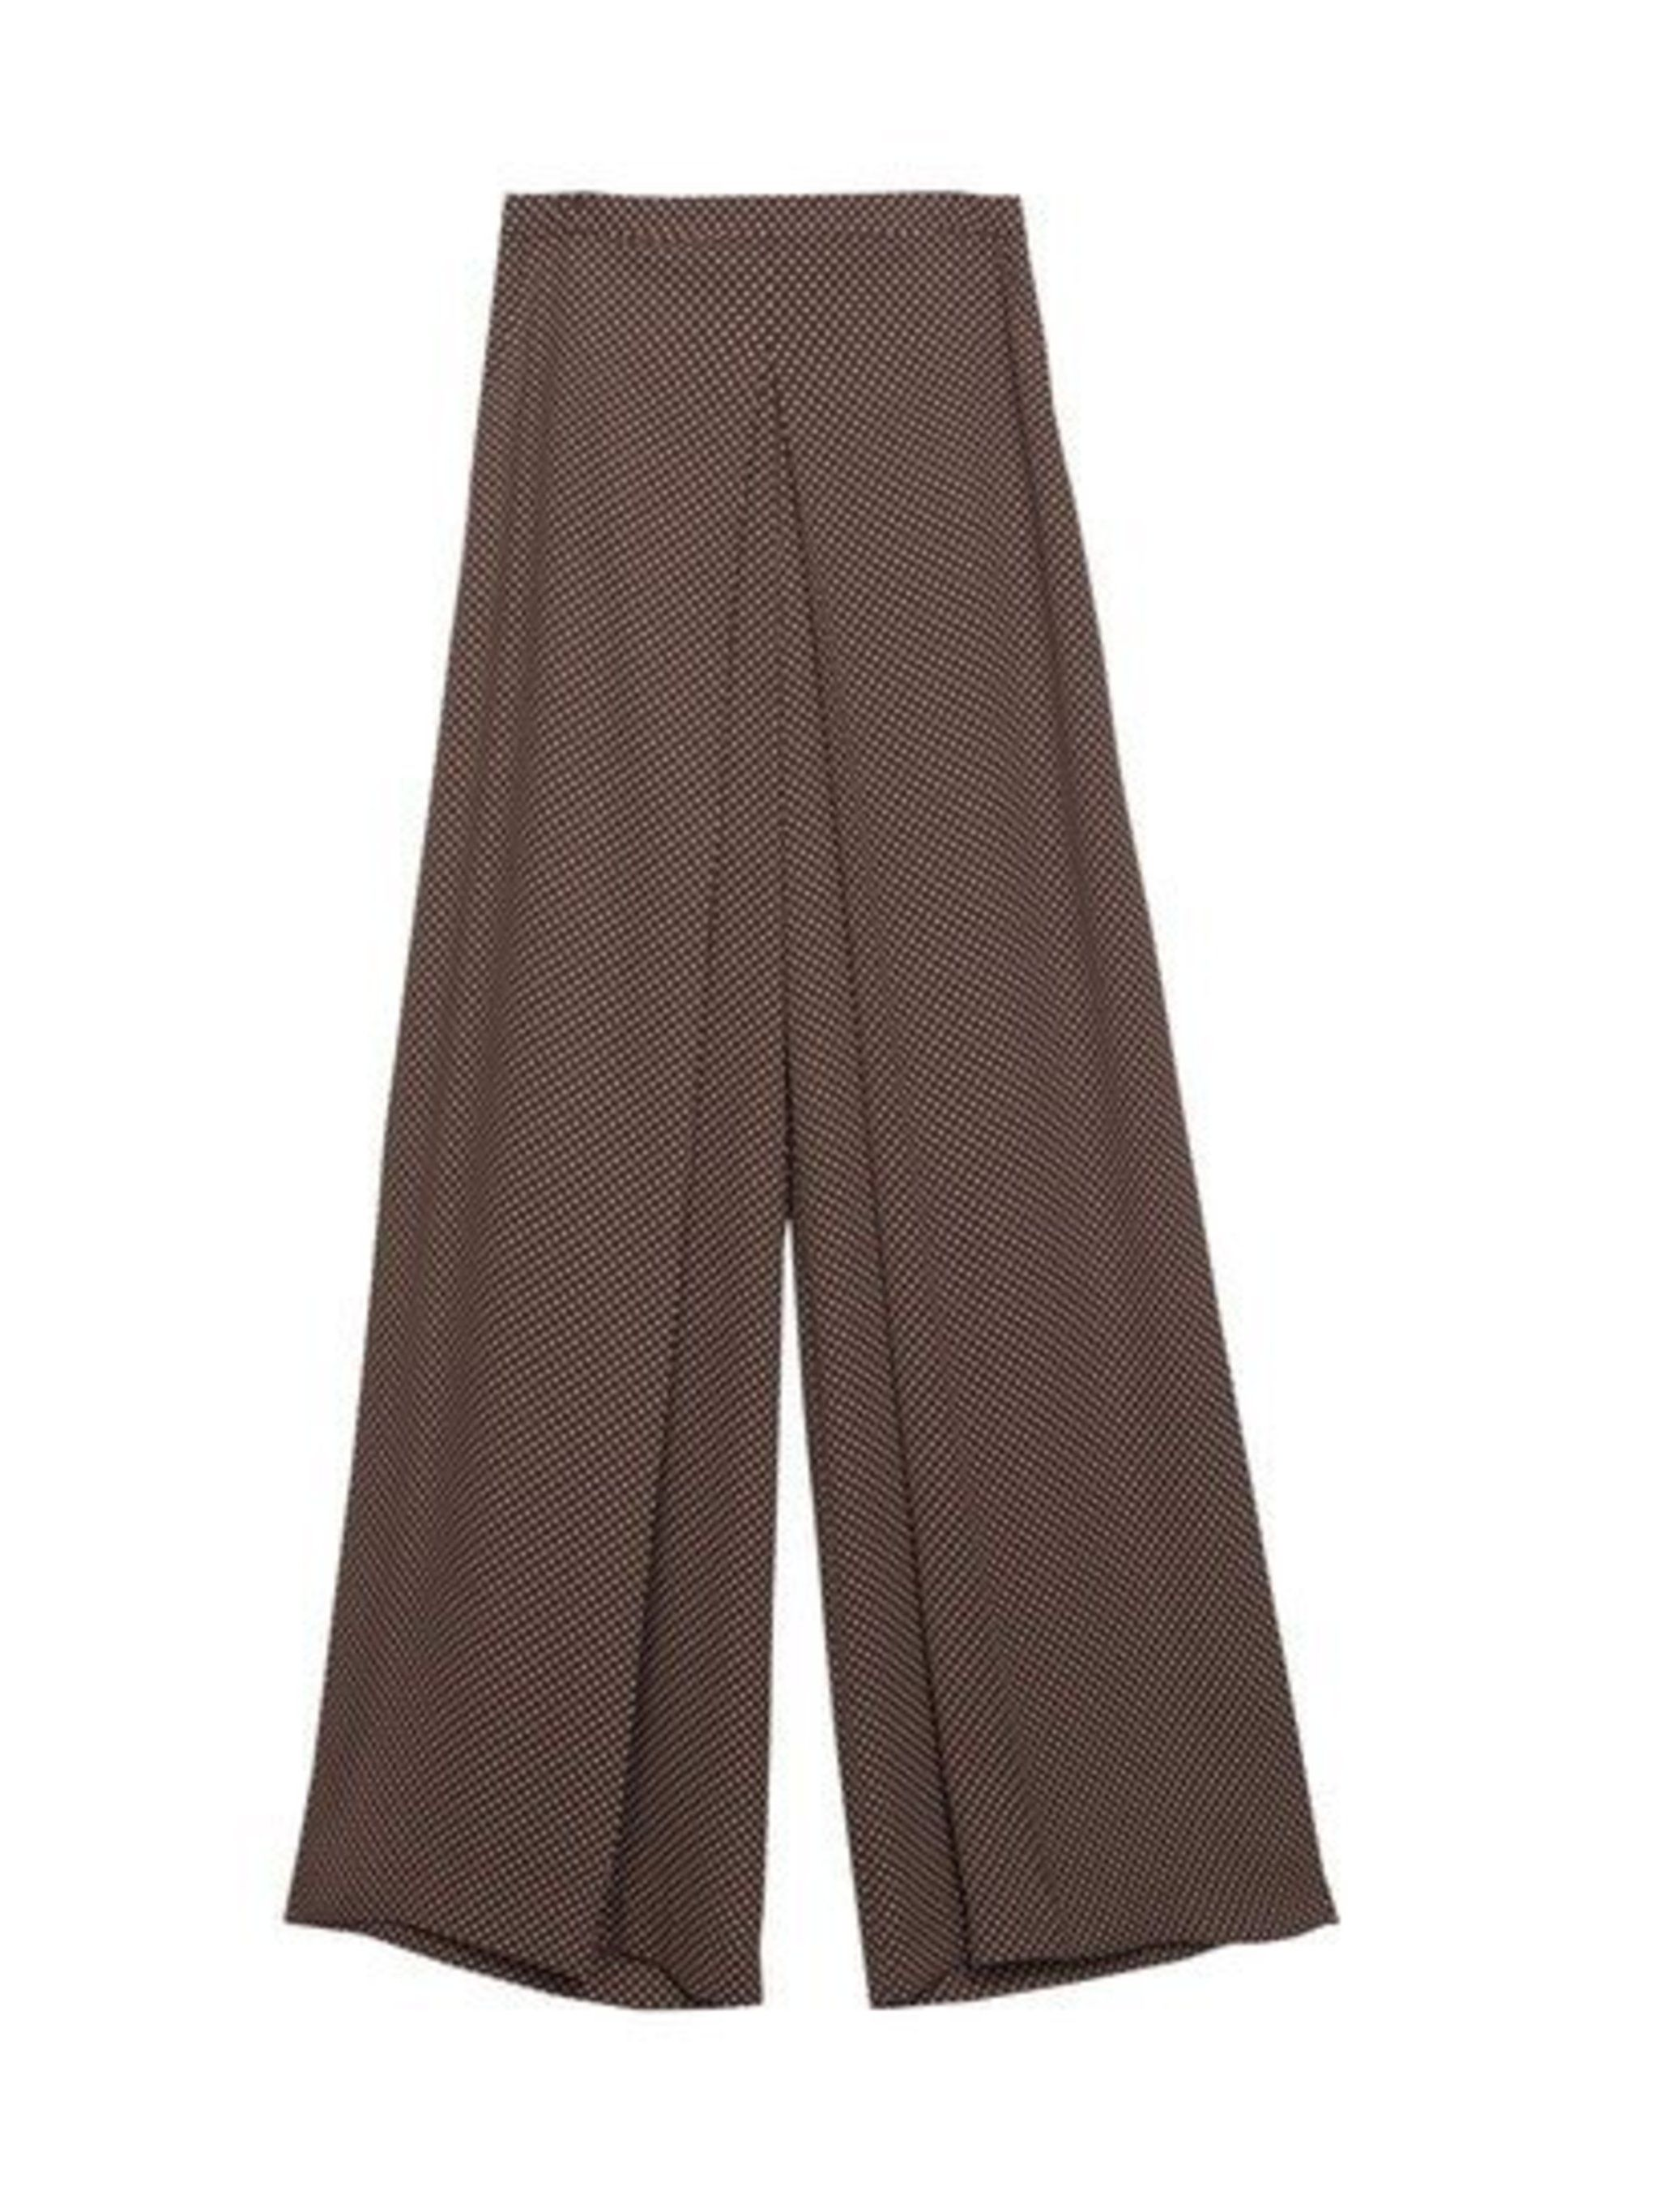 Pair wide-leg trousers with a cropped knit.Zara trousers, £29.99